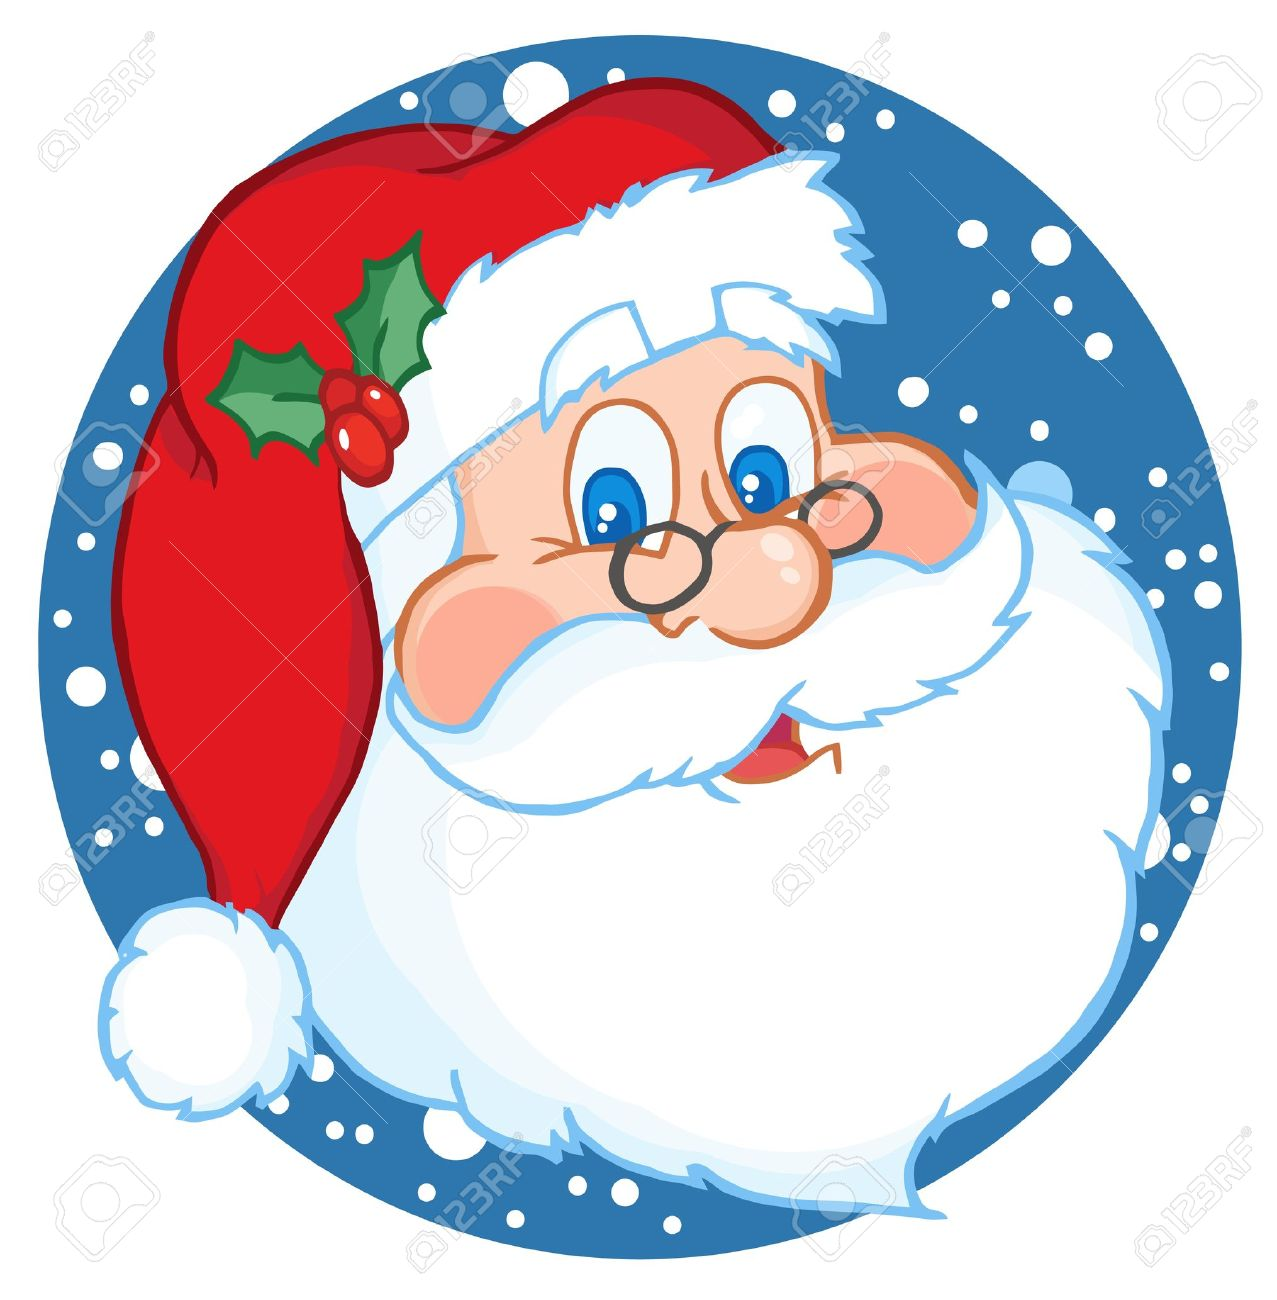 classic santa claus face royalty free cliparts vectors and stock rh 123rf com santa face clipart round cartoon santa face clip art